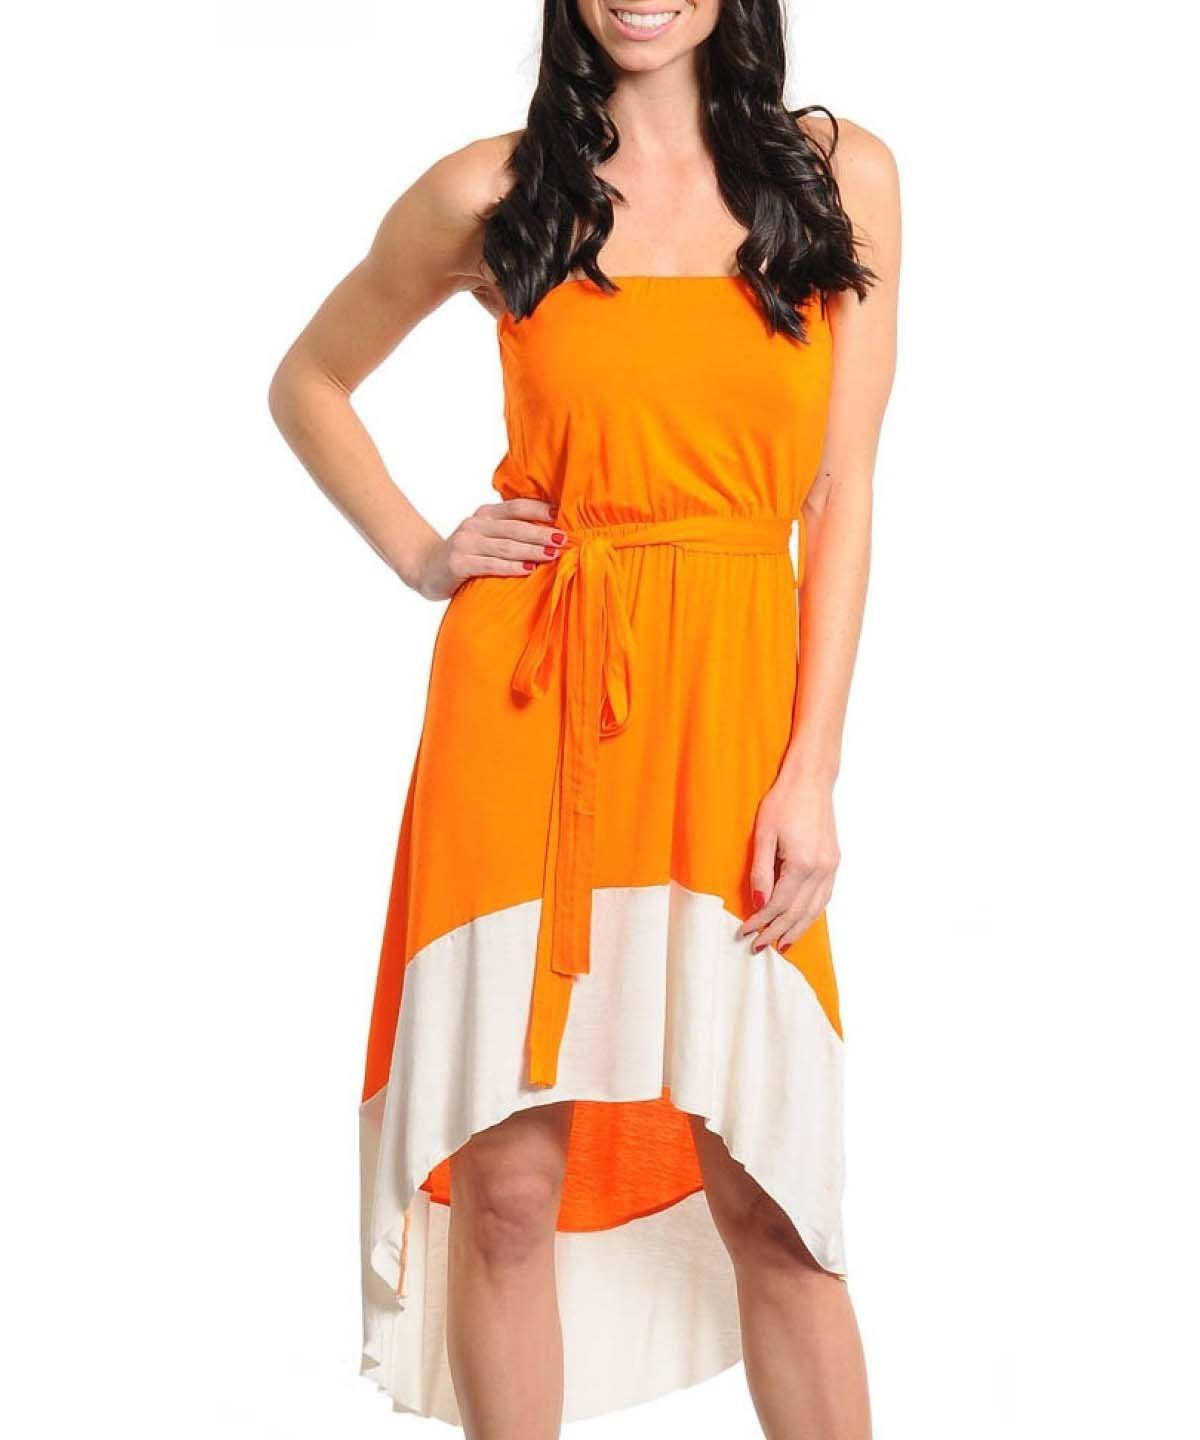 G2 Fashion Square Colorblocked High-Low Tube Dress: